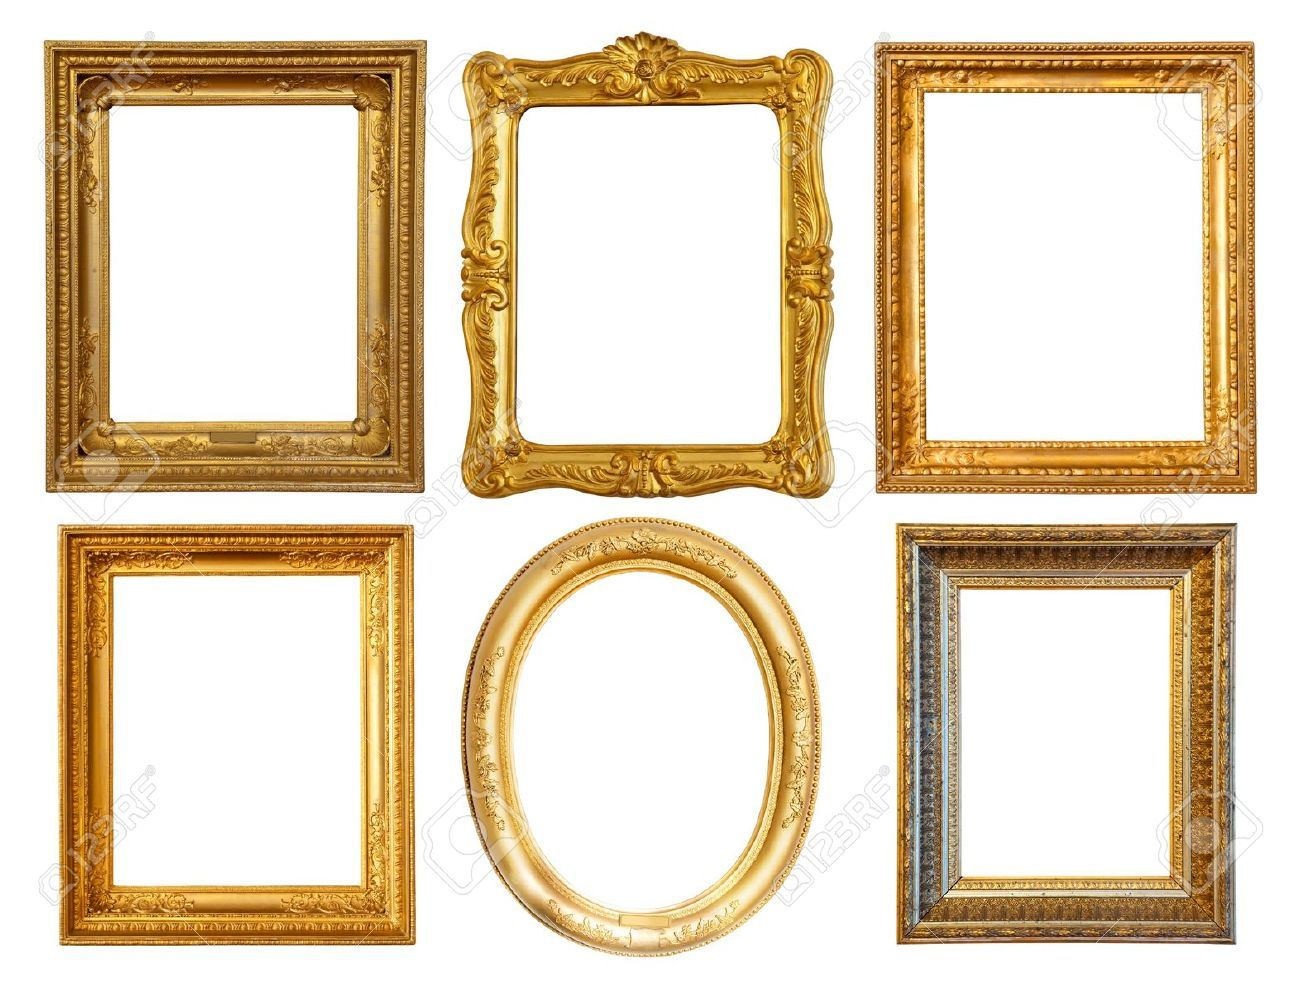 9409560 set of few luxury gilded frames stock photo frames frame 9409560 set of few luxury gilded frames stock jeuxipadfo Images